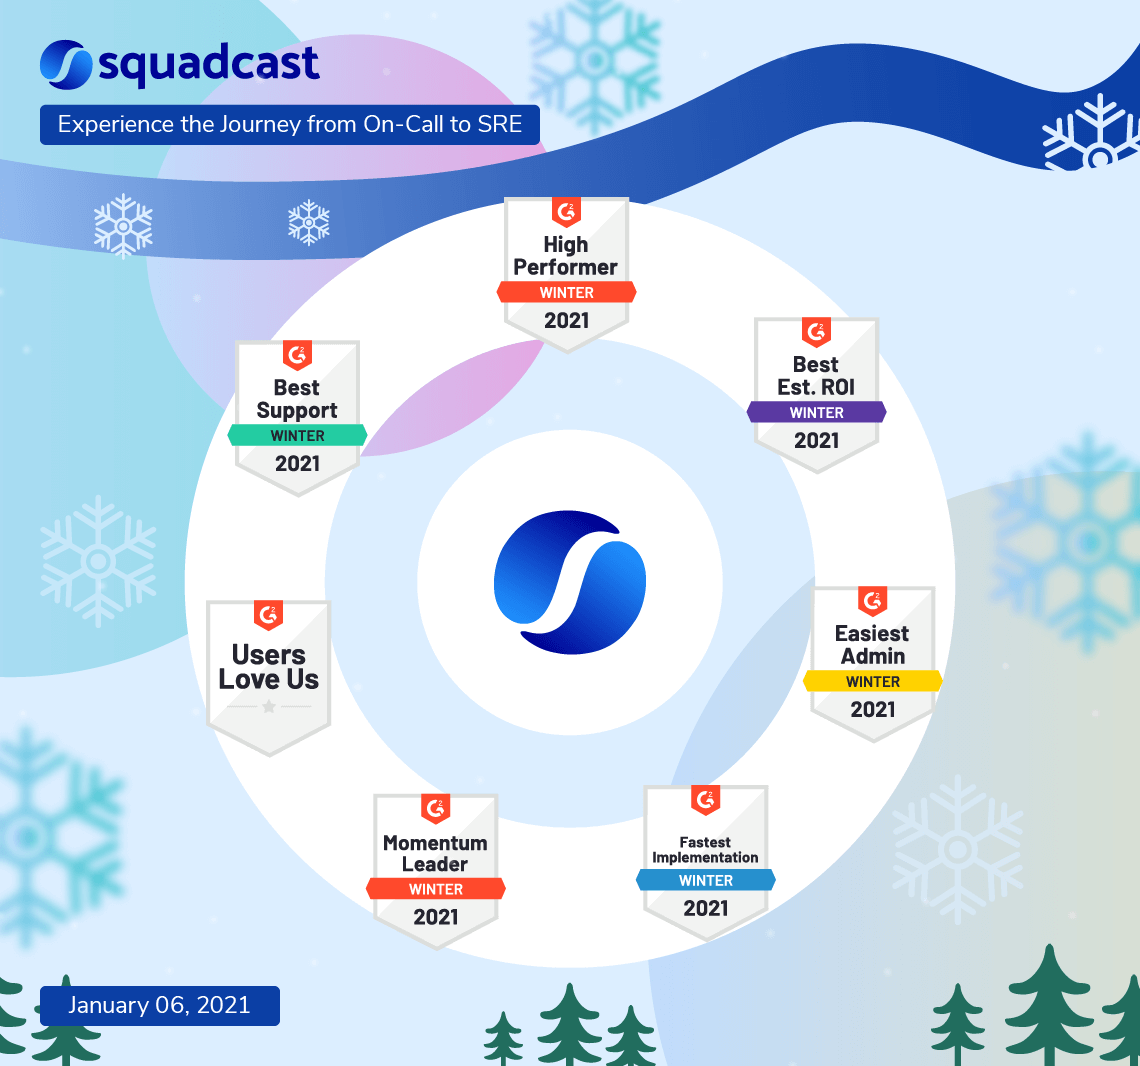 G2 Recognizes Squadcast as Momentum Leader in Incident Management